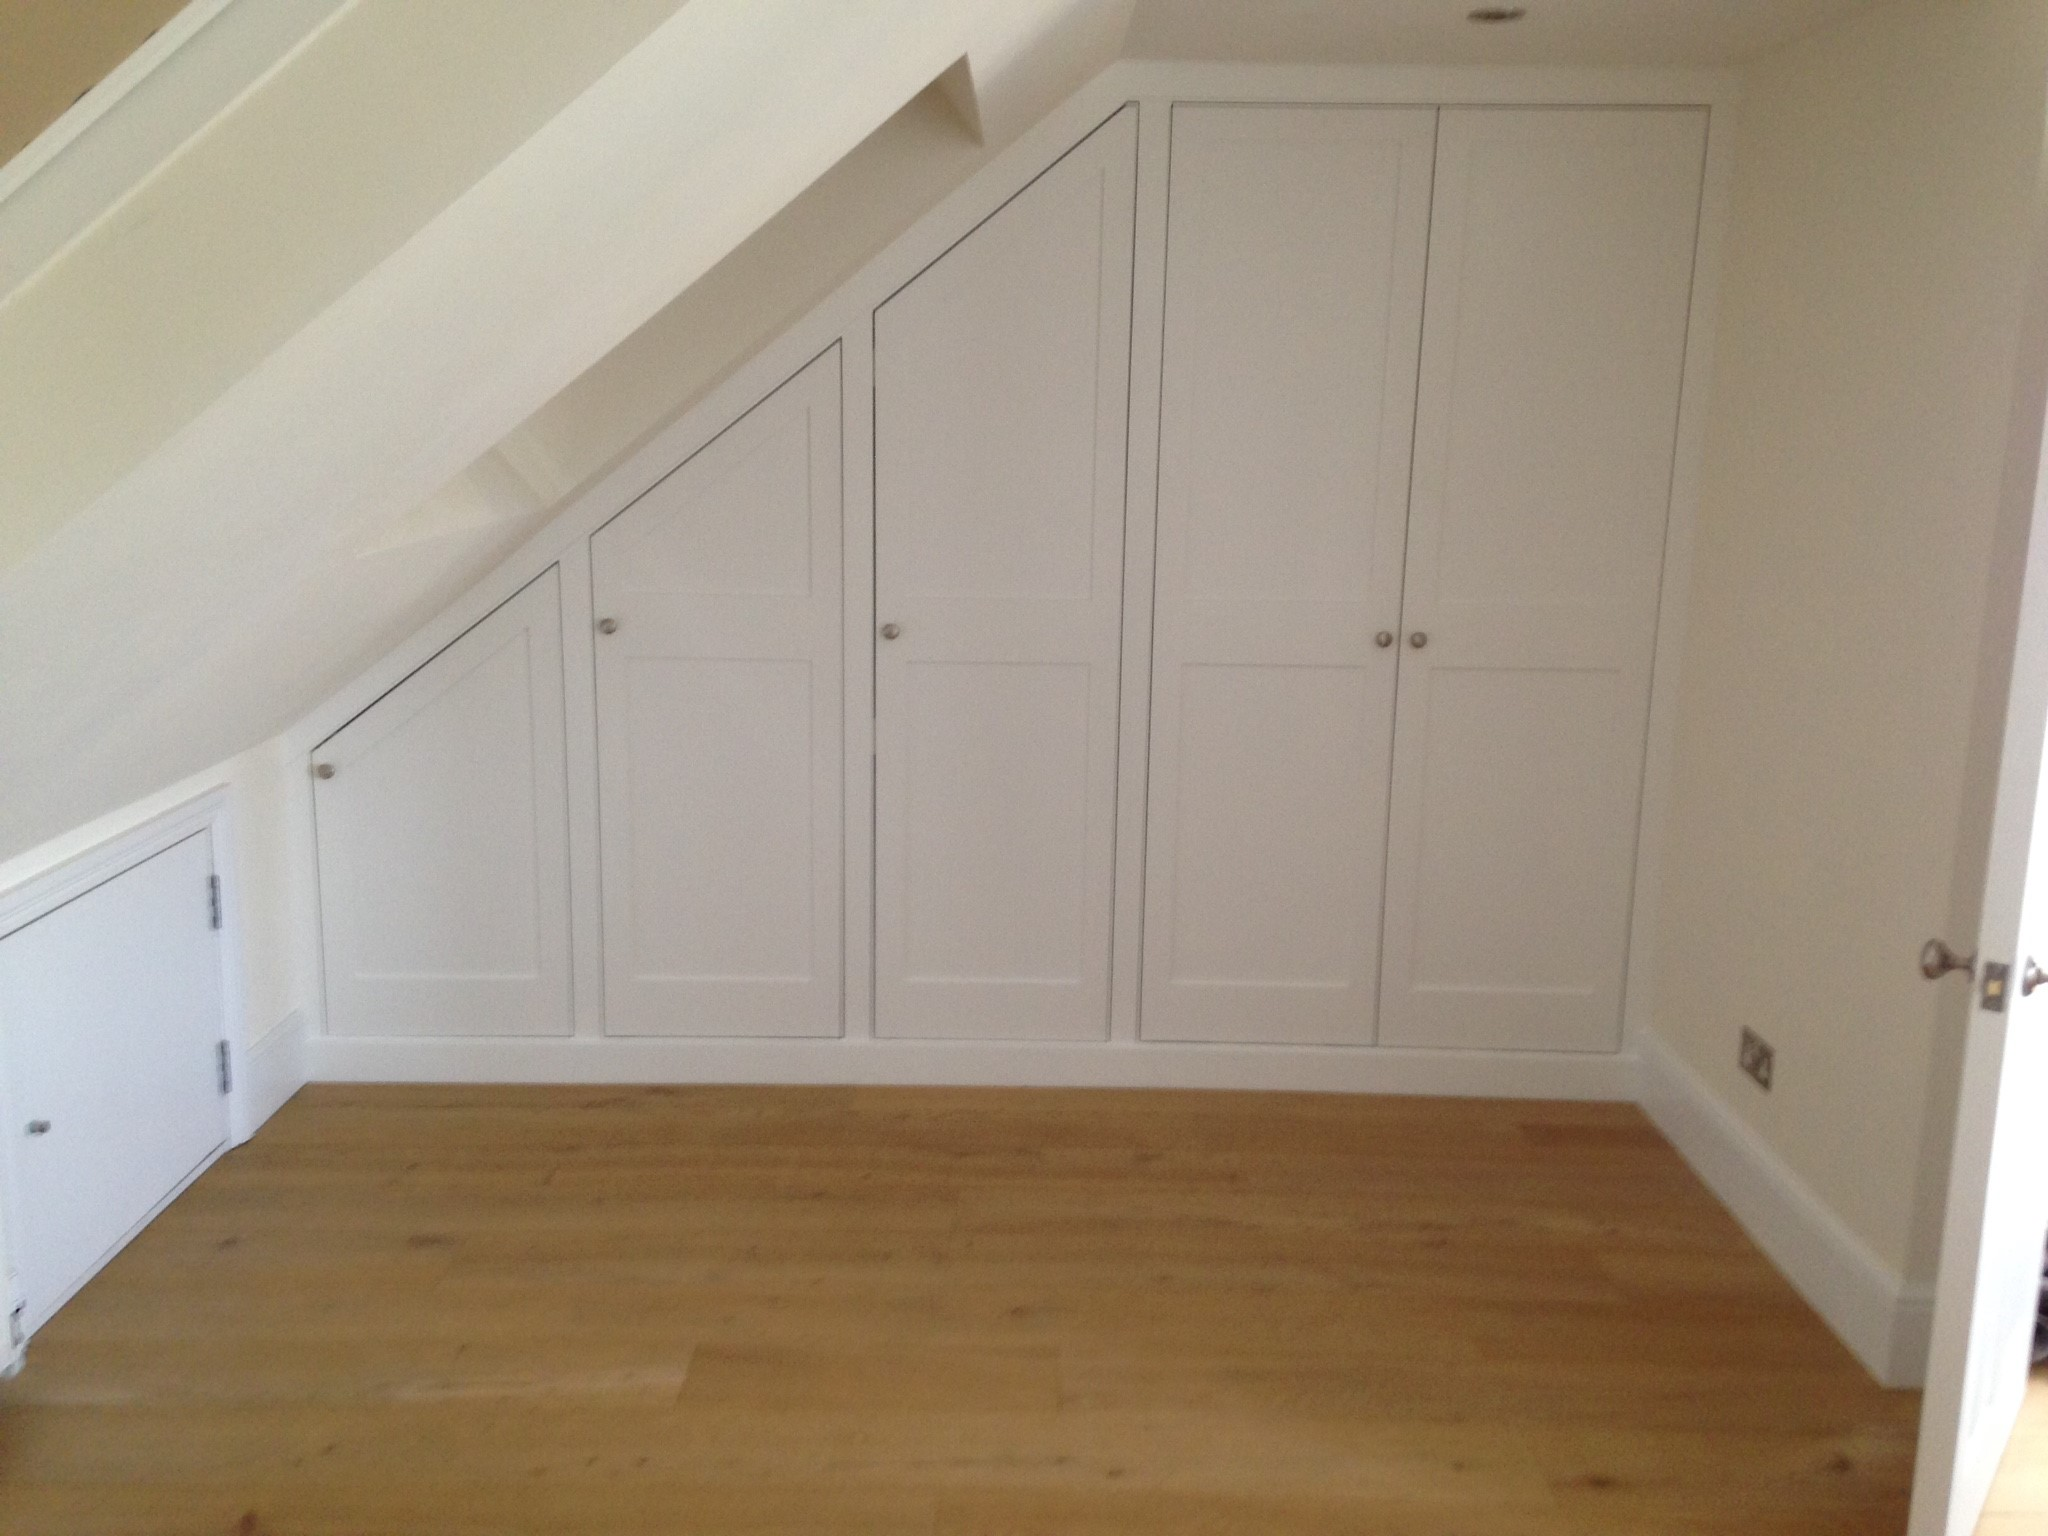 This contemporary Angled wardrobe utilizes difficult space in a loft room.